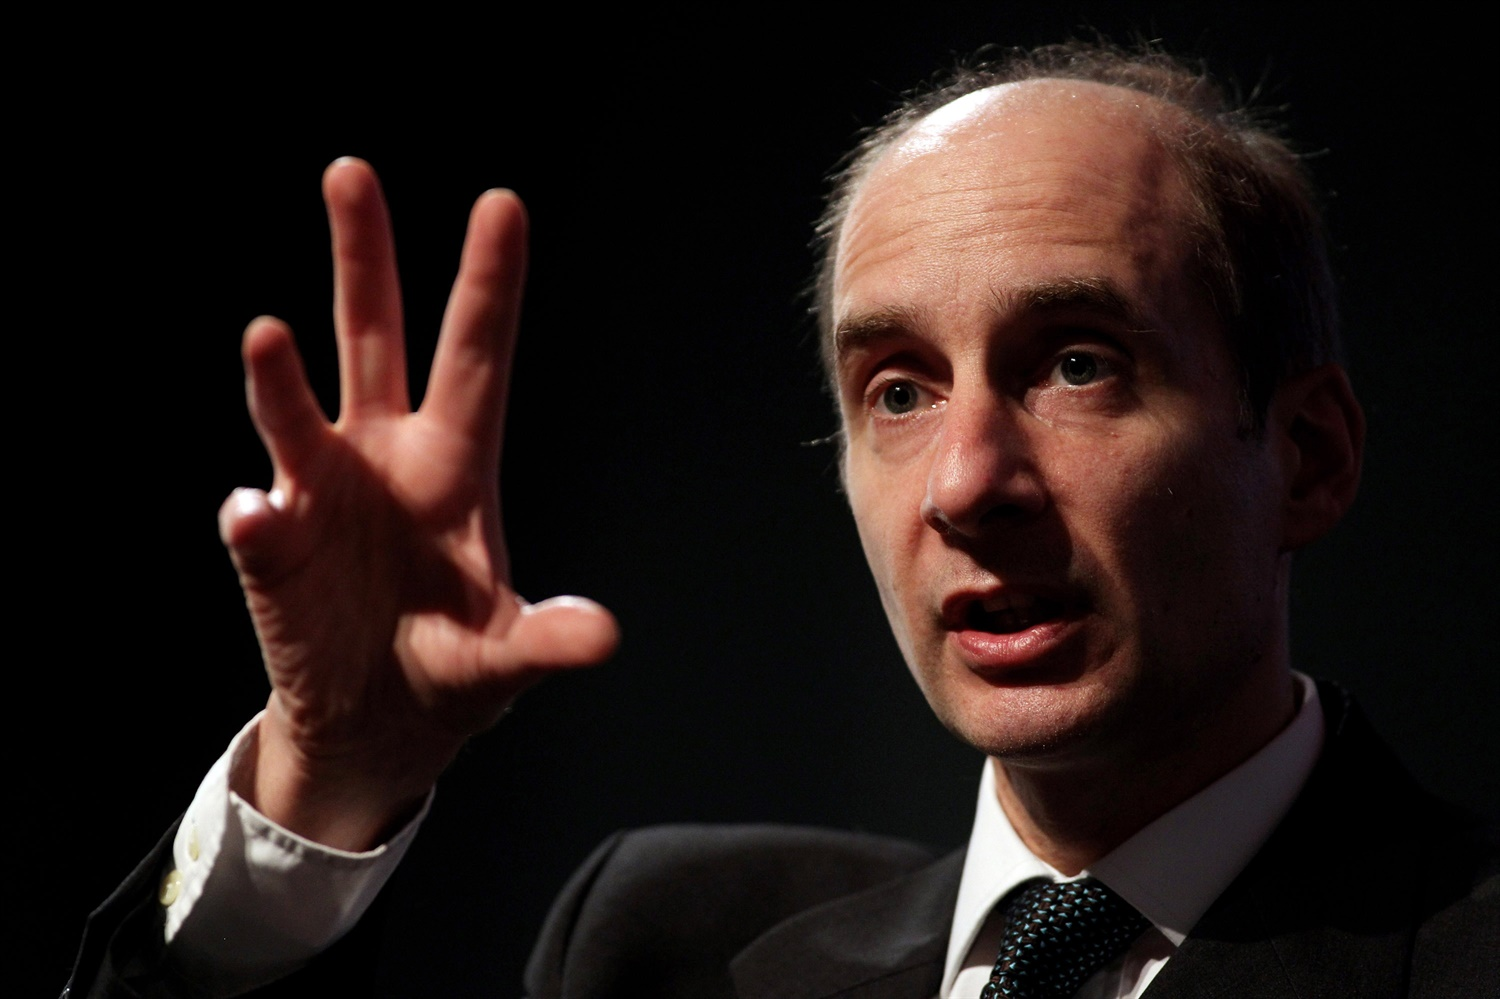 Adonis urges supply chain to 'not be distracted by headlines' and push on with HS2